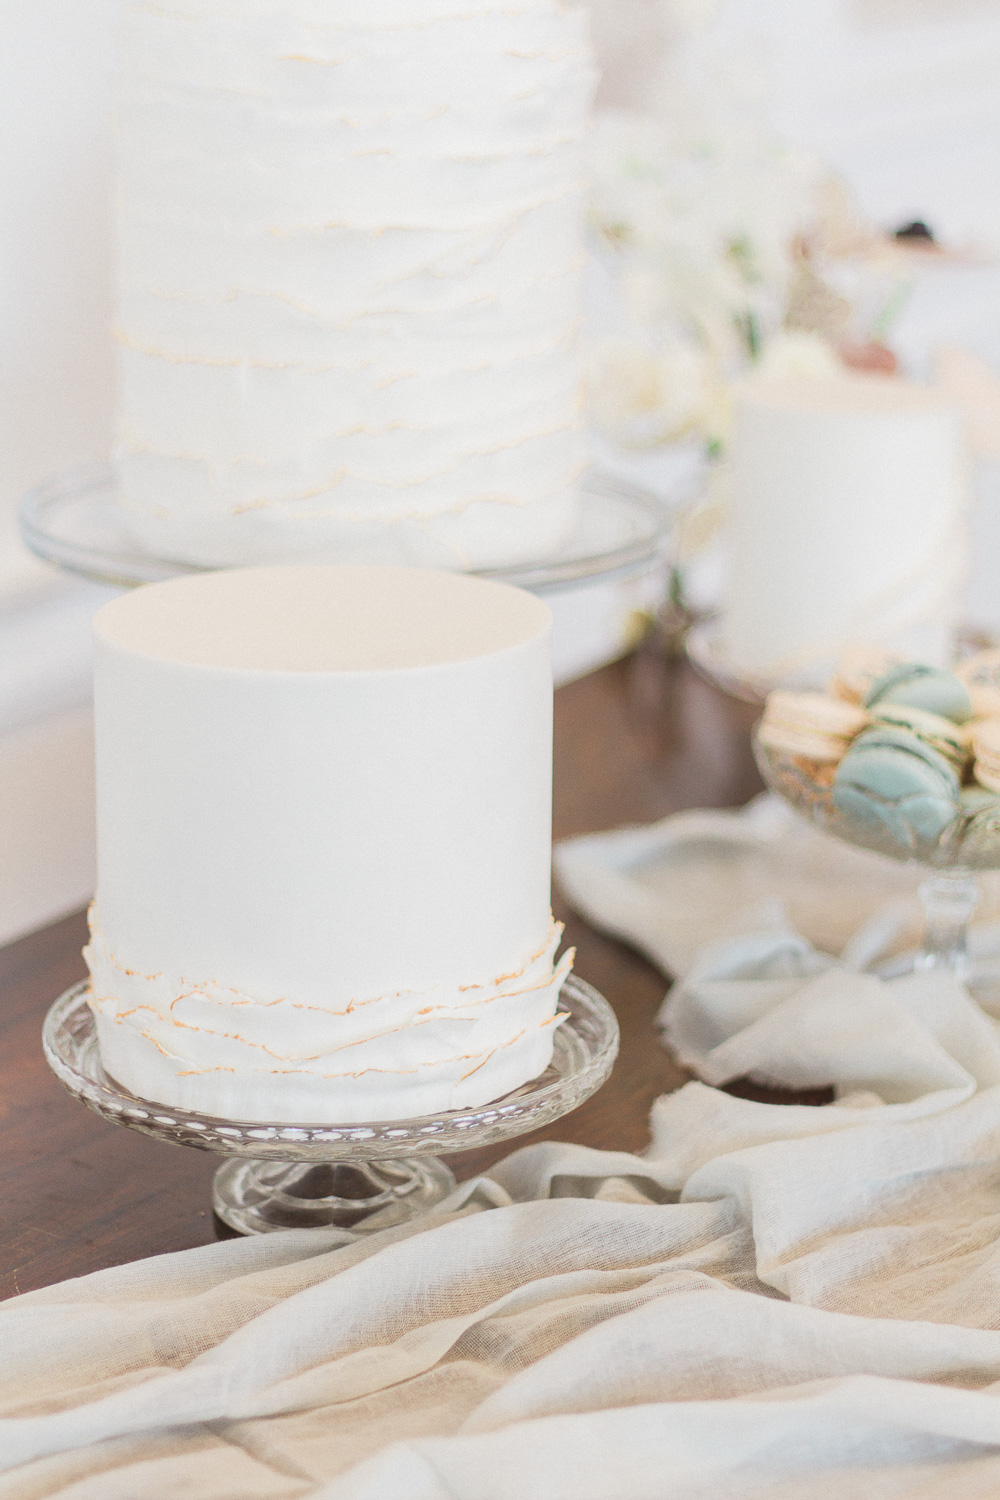 Dessert table with white cakes with gold edging by Anna Lewis at Froyle Park wedding venue in the UK